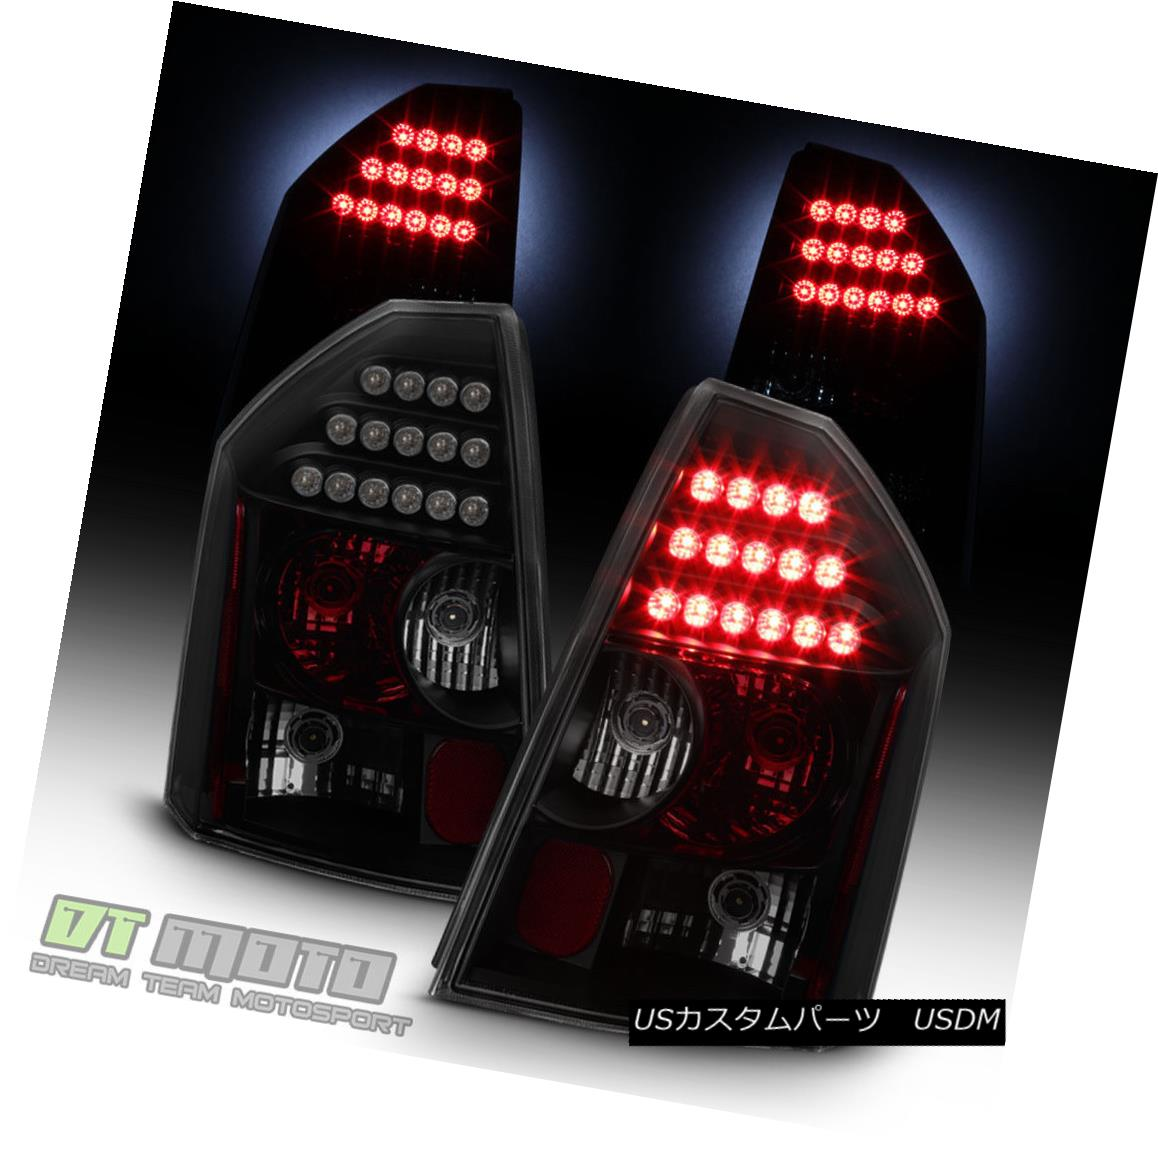 テールライト Black Smoke 2005 2006 2007 Chrysler Smoke Left+Right 300C LED Chrysler Tail Lights Brake Lamps Left+Right ブラックスモーク2005 2006 2007クライスラー300C LEDテールライトブレーキランプ左+右, ハコダテシ:3b1559bb --- officewill.xsrv.jp